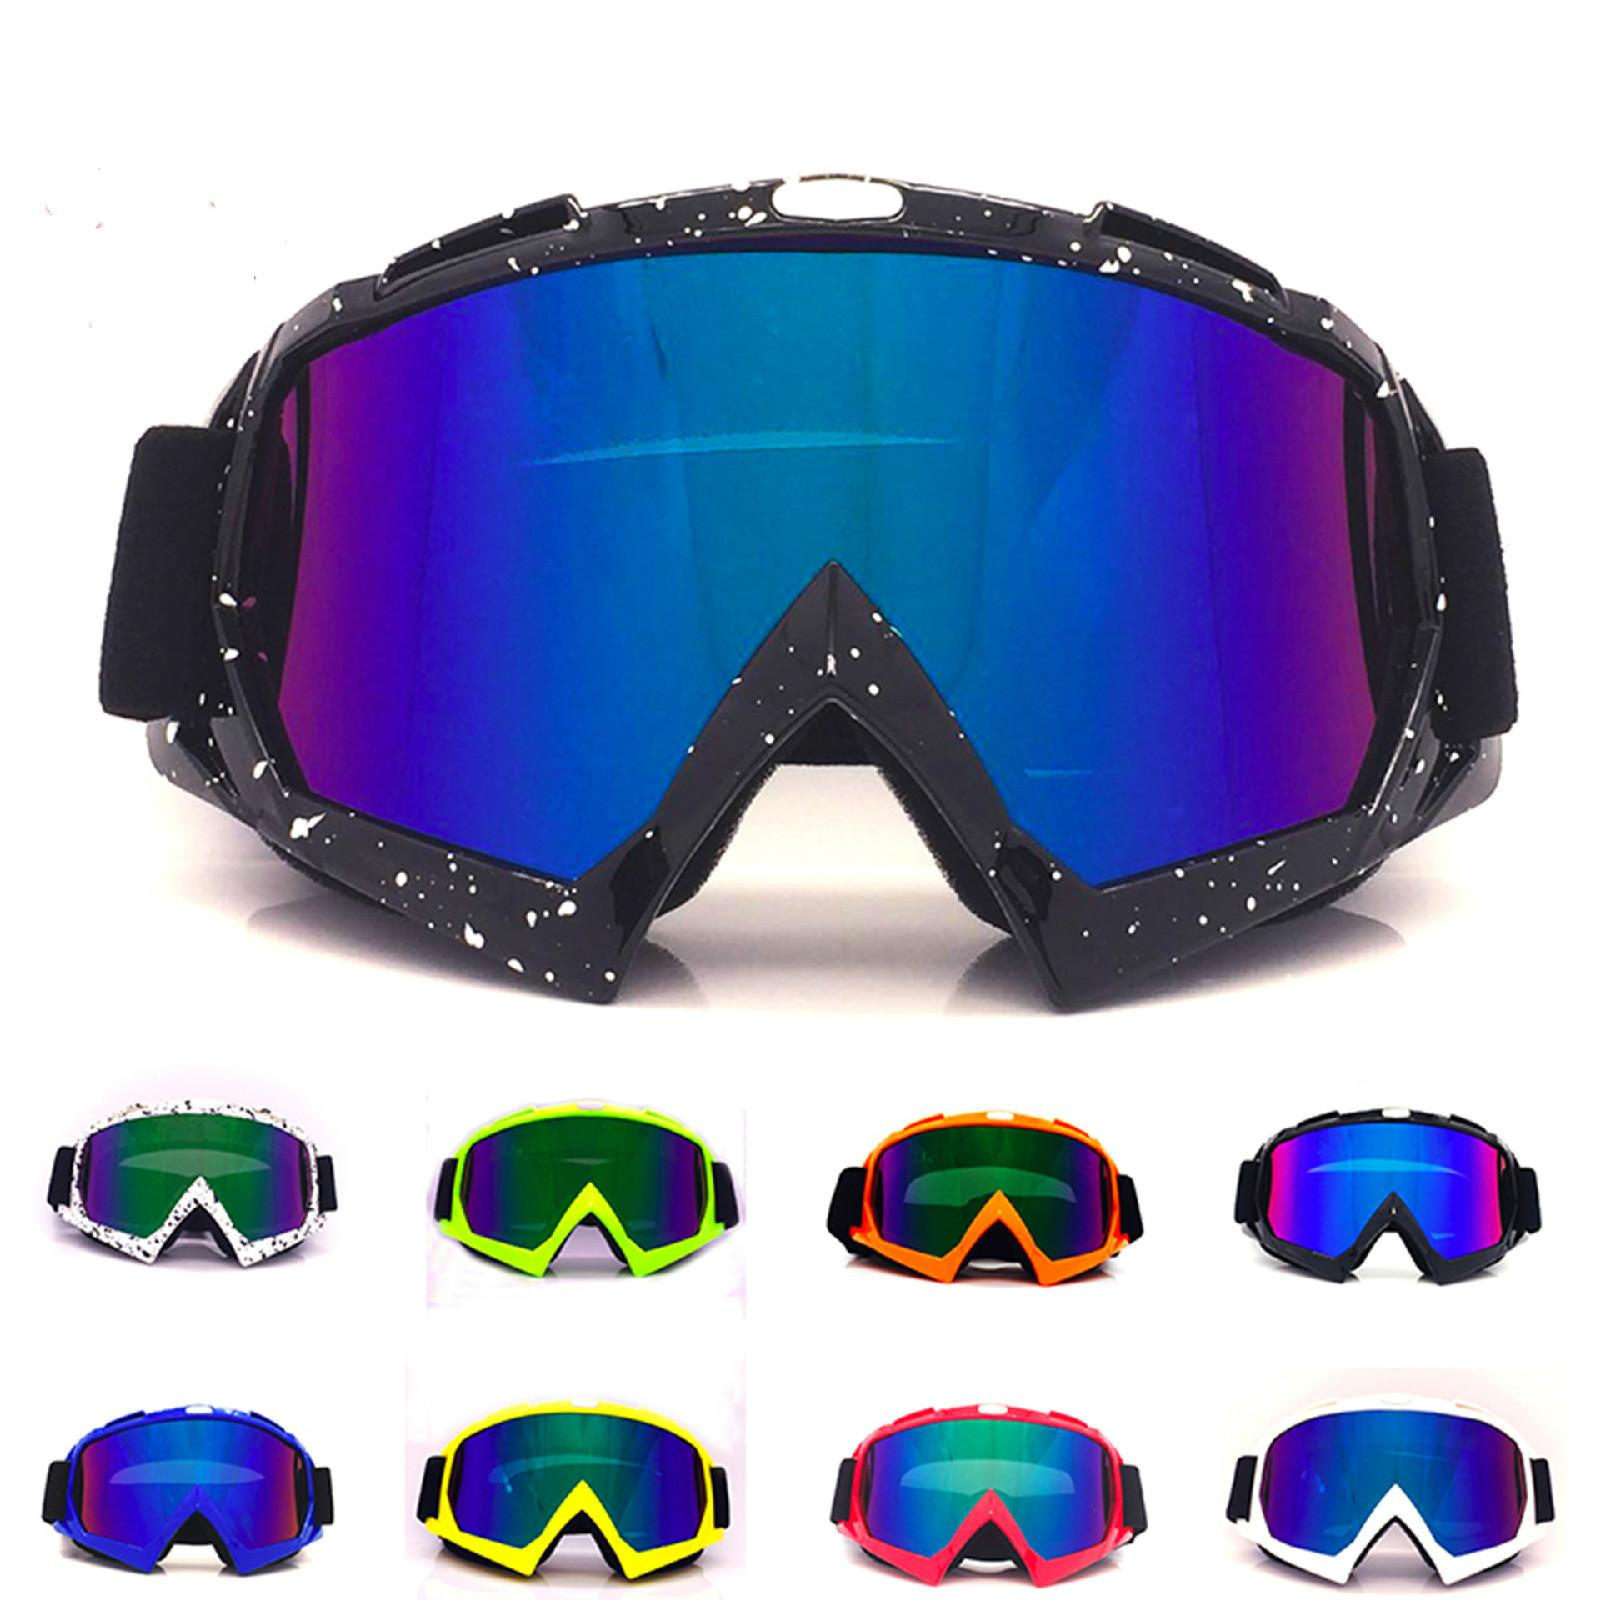 c40085756464 2019 Men Women Ski Goggles UV 400 Anti Fog Ski Eyewear Winter Snowboard  Glasses Skiing Goggles Snowboarding Glasses From Cfgs